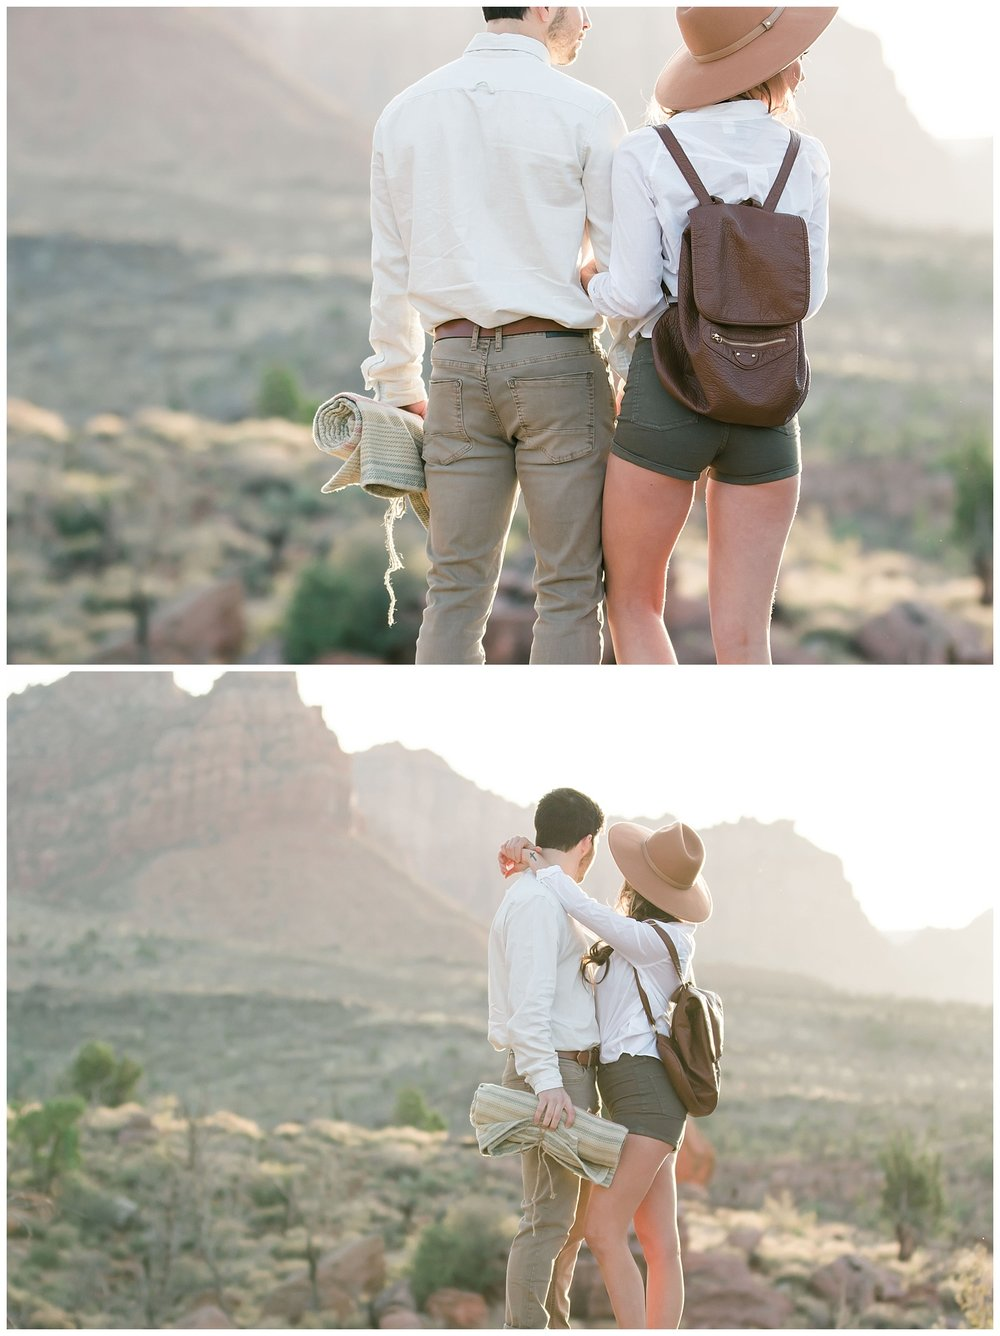 Elizabeth M Photography Northern Virginia Destination Wedding and Elopement Photographer Adventure Photography Zion National Park_0147.jpg